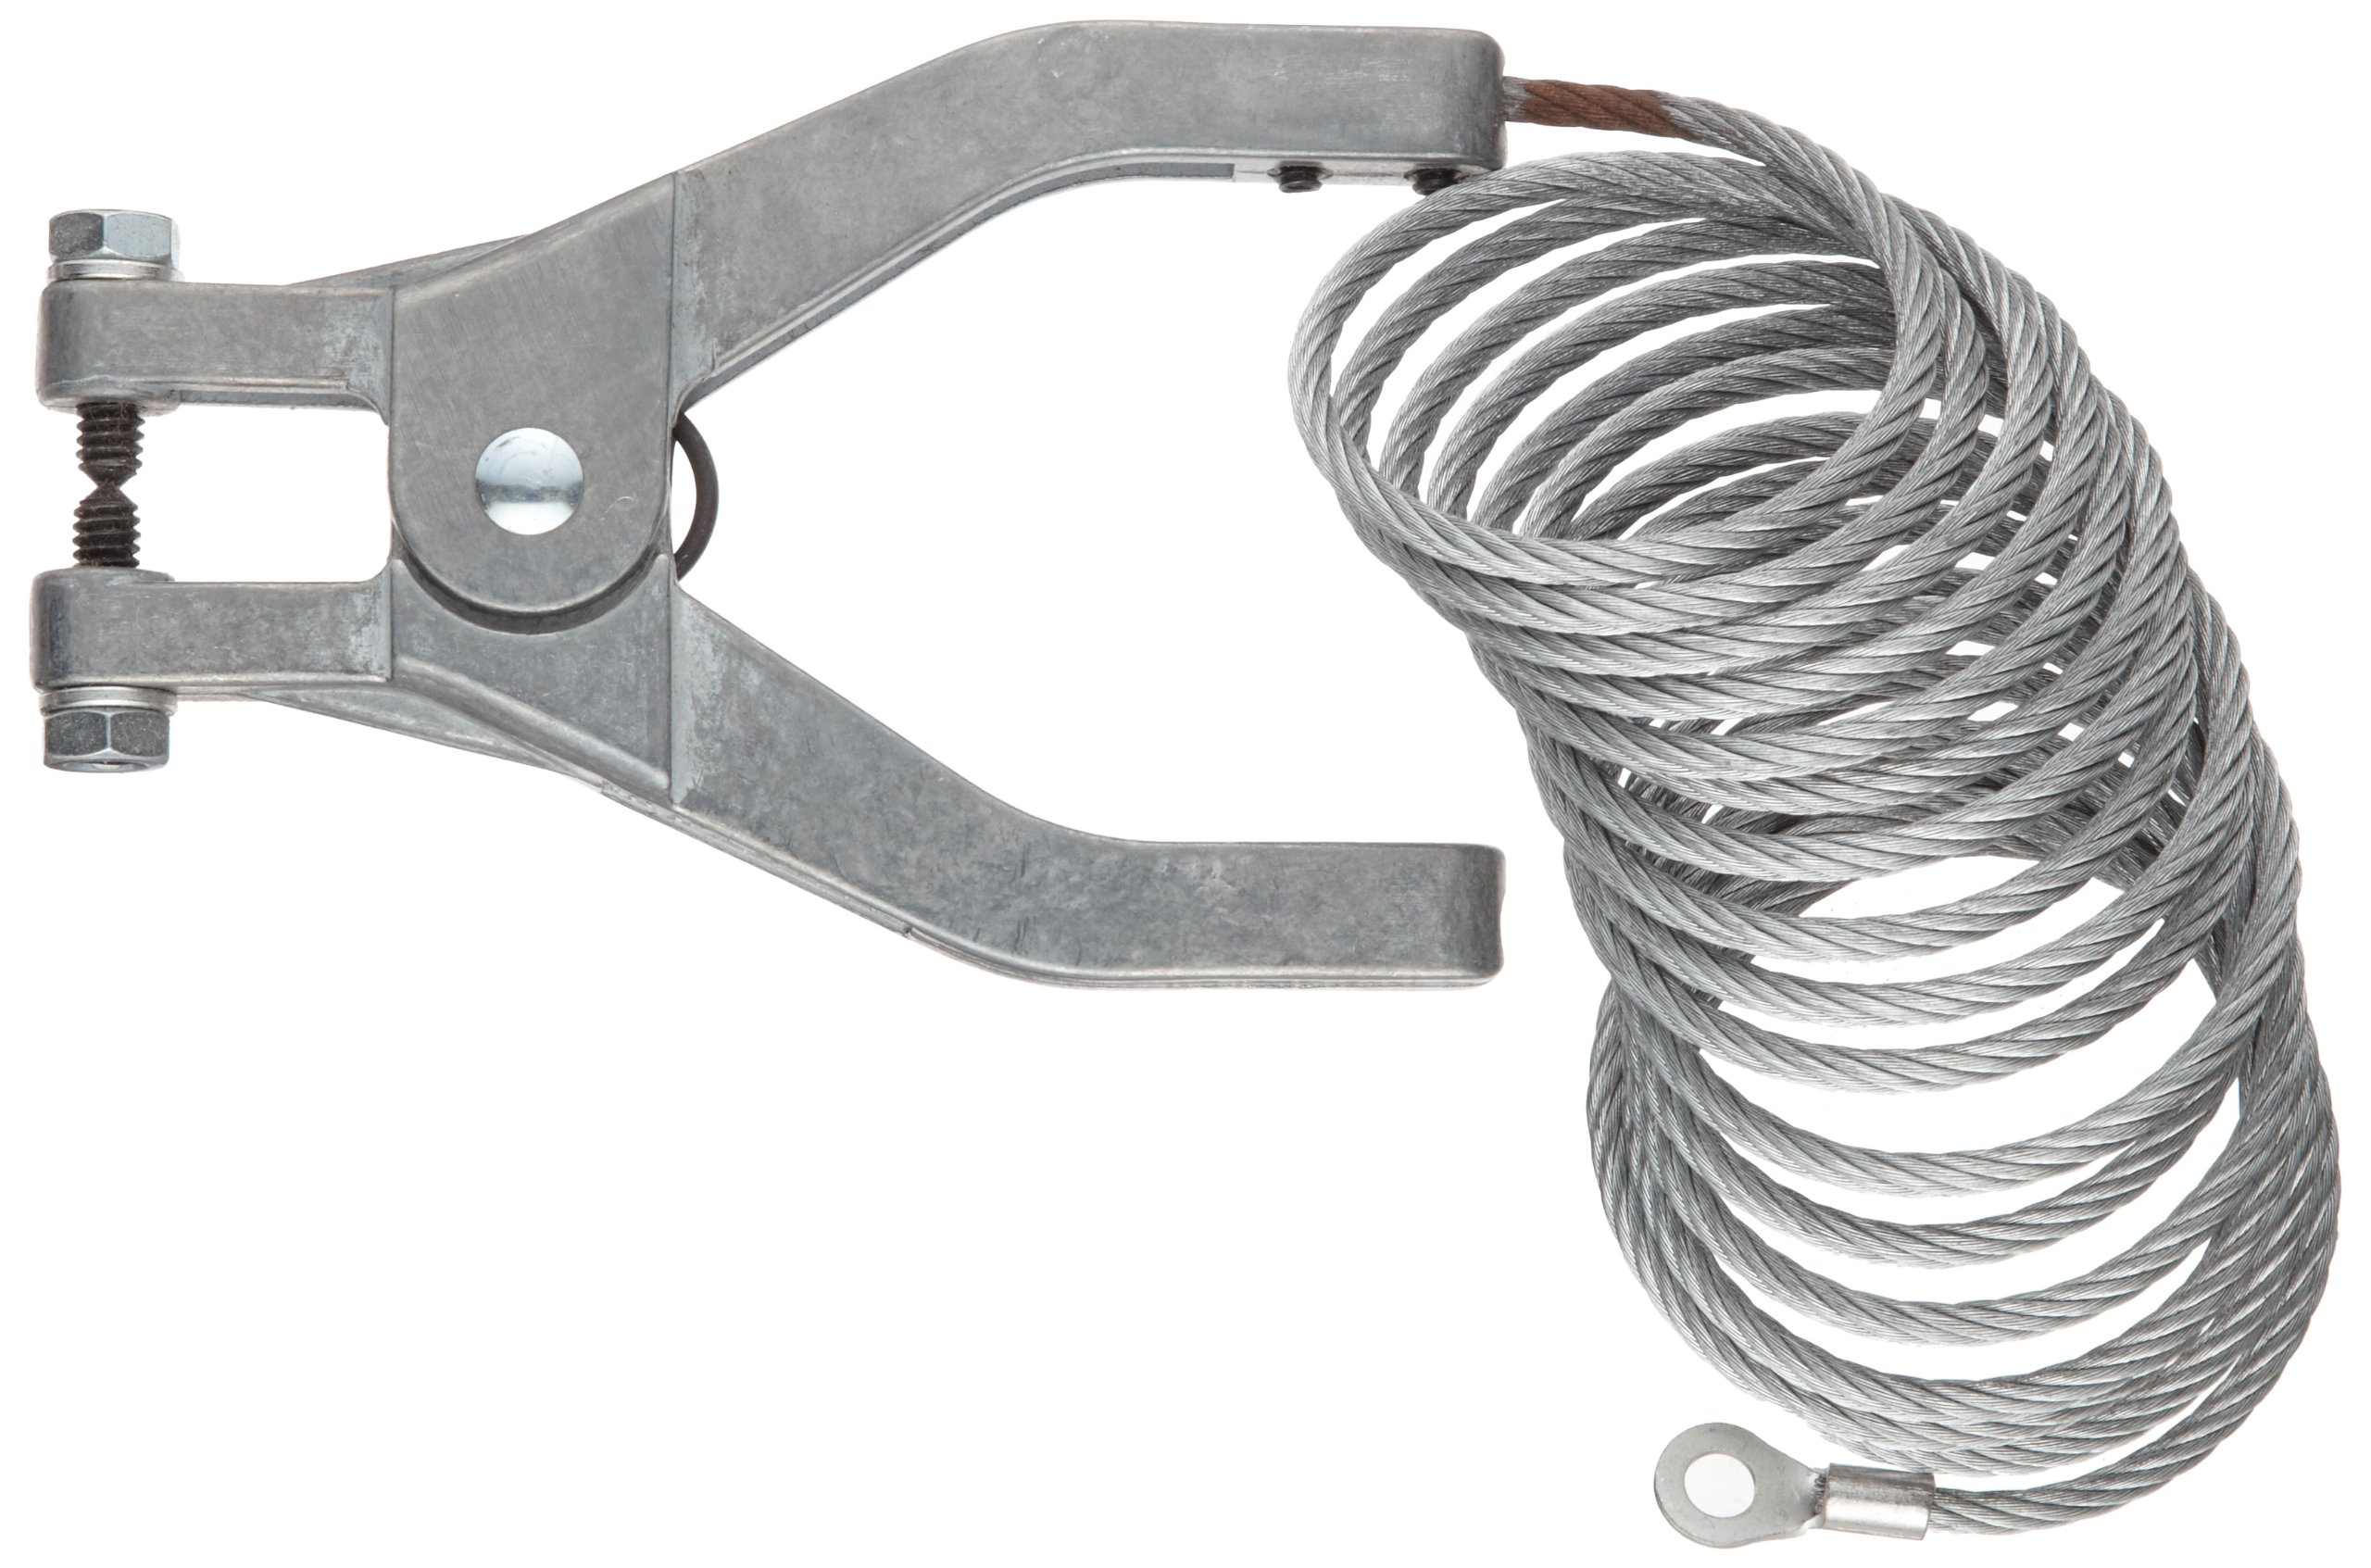 Justrite 08498 3' Long Flexible Bonding Wire With Flexible 3'-Hand Clamp And 5-8'' C Clamp